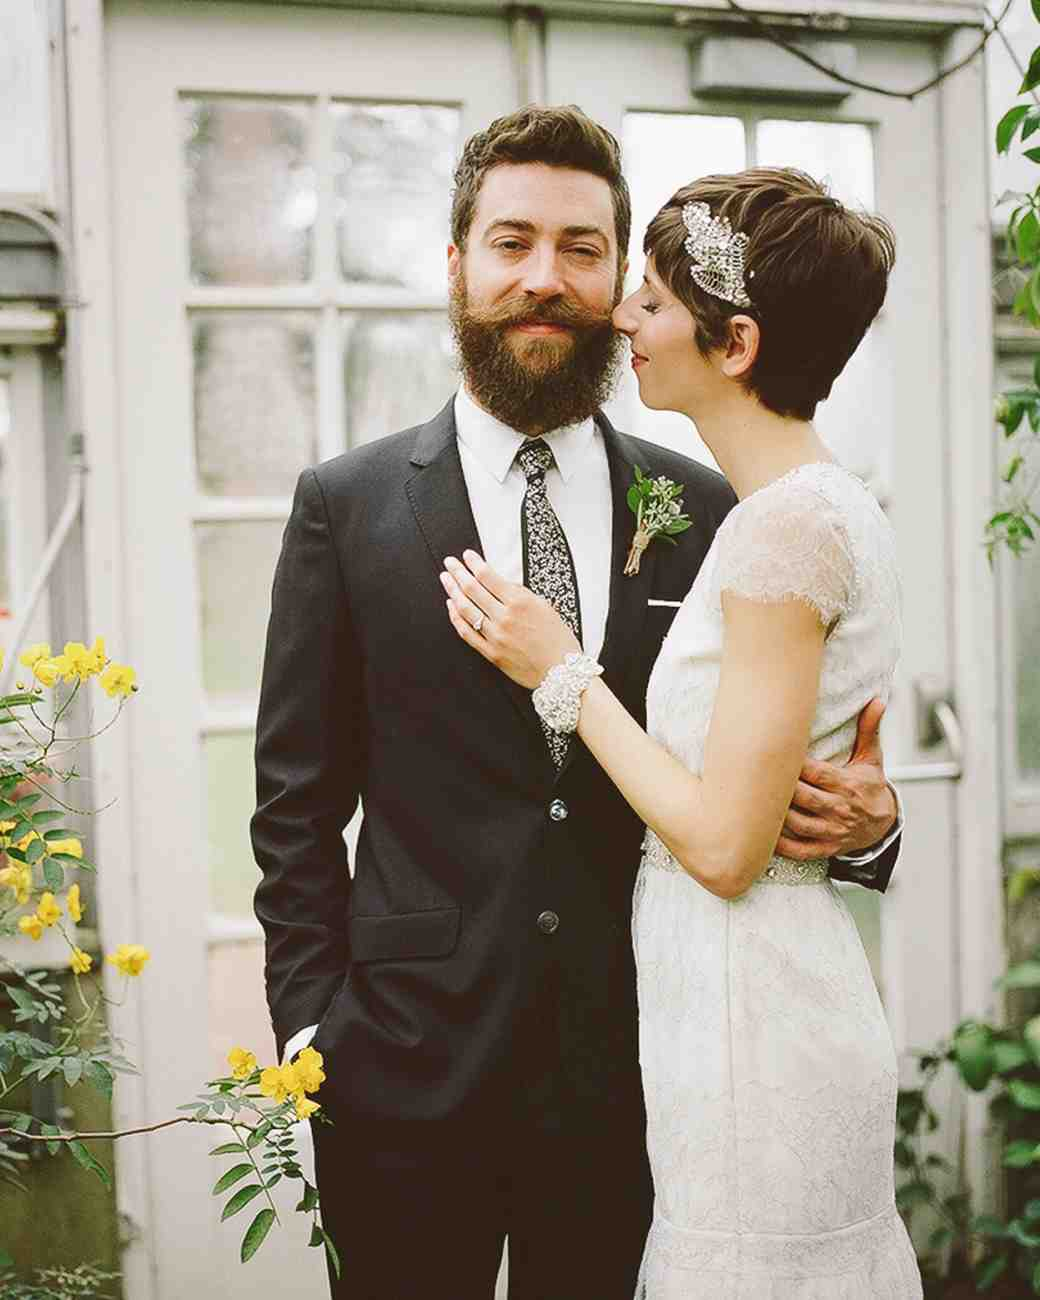 Wedding Haircut Men: Find The Best Beard Styles For A Perfect Wedding In 2018